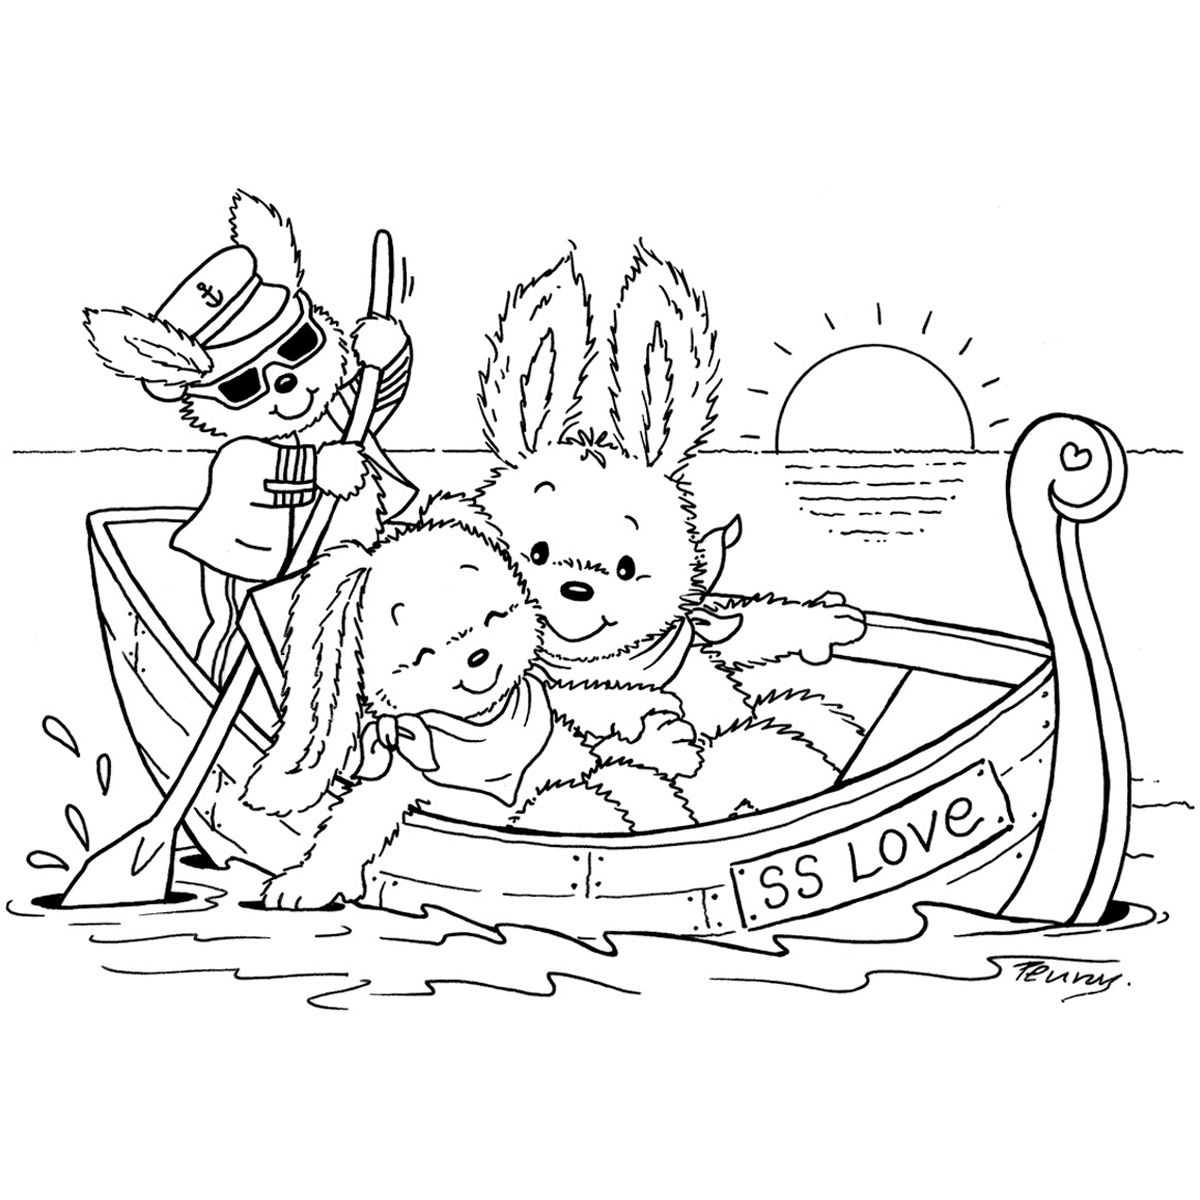 499992156336 Jpg 1200 1200 Cute Coloring Pages Pattern Coloring Pages Coloring Pages